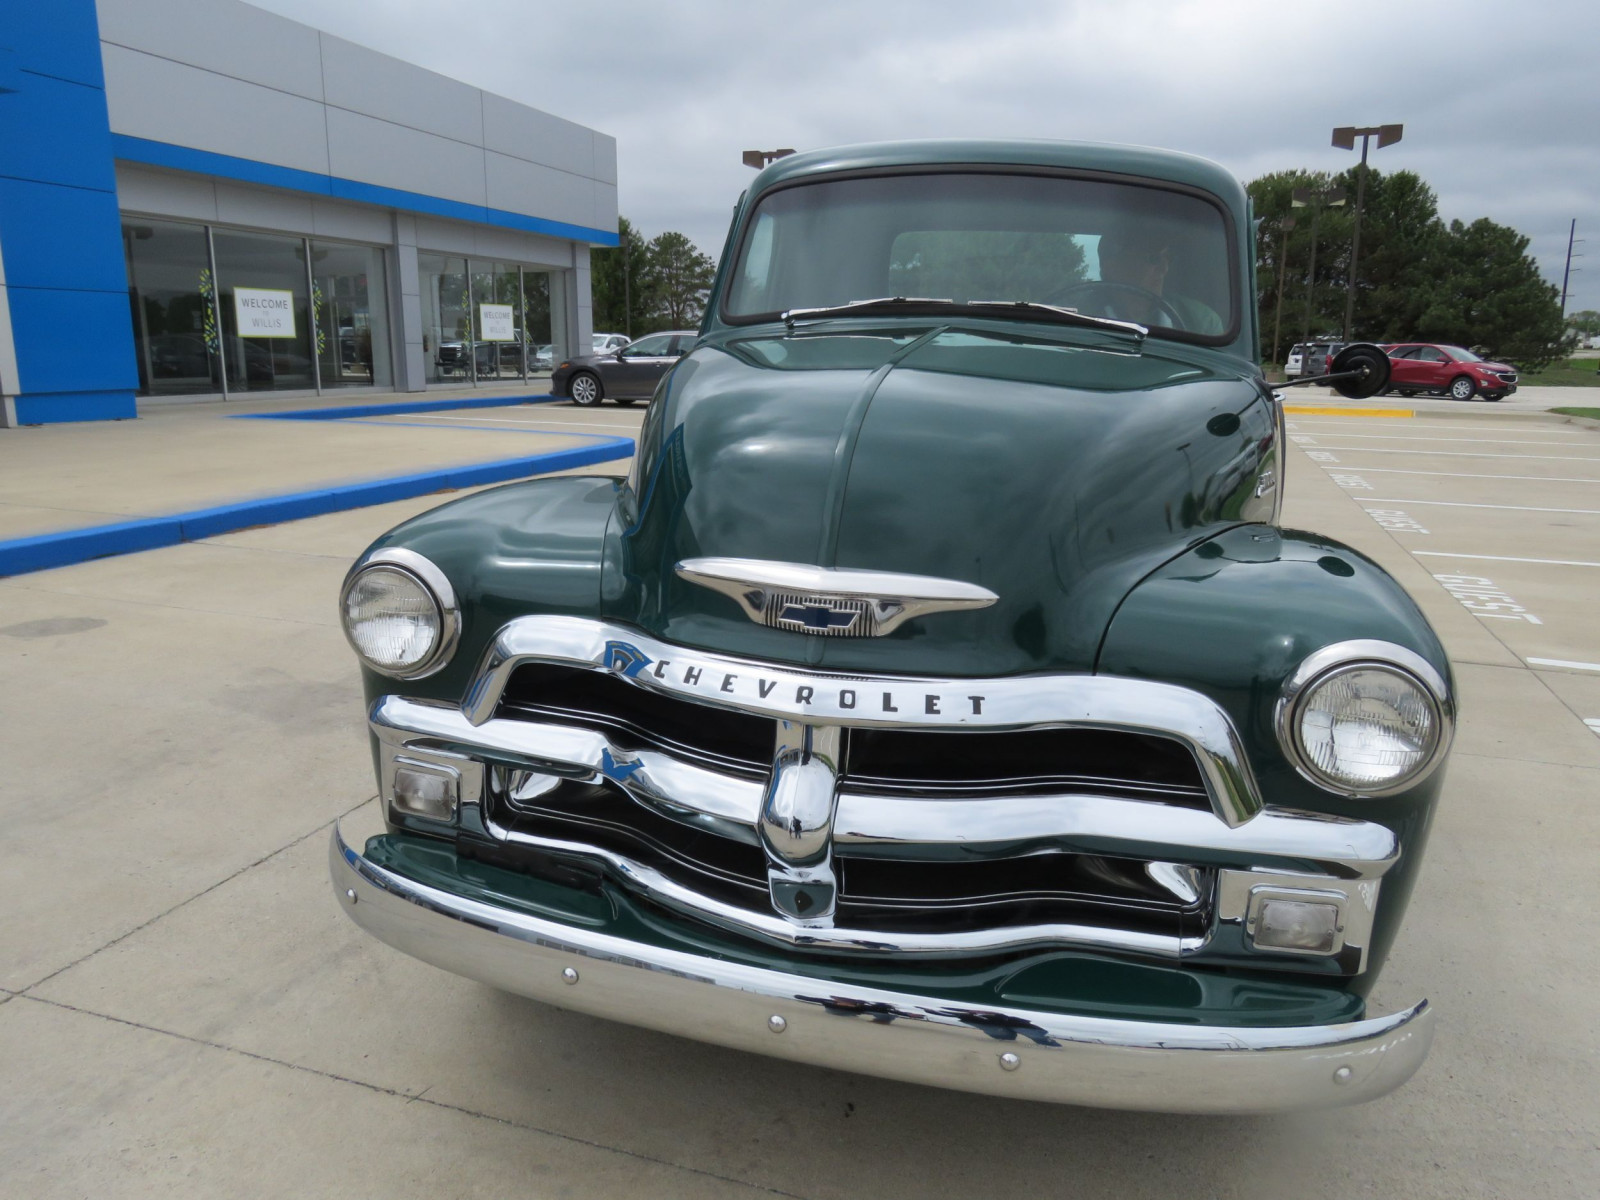 1954 Chevrolet 3100 Series Pickup - Image 3